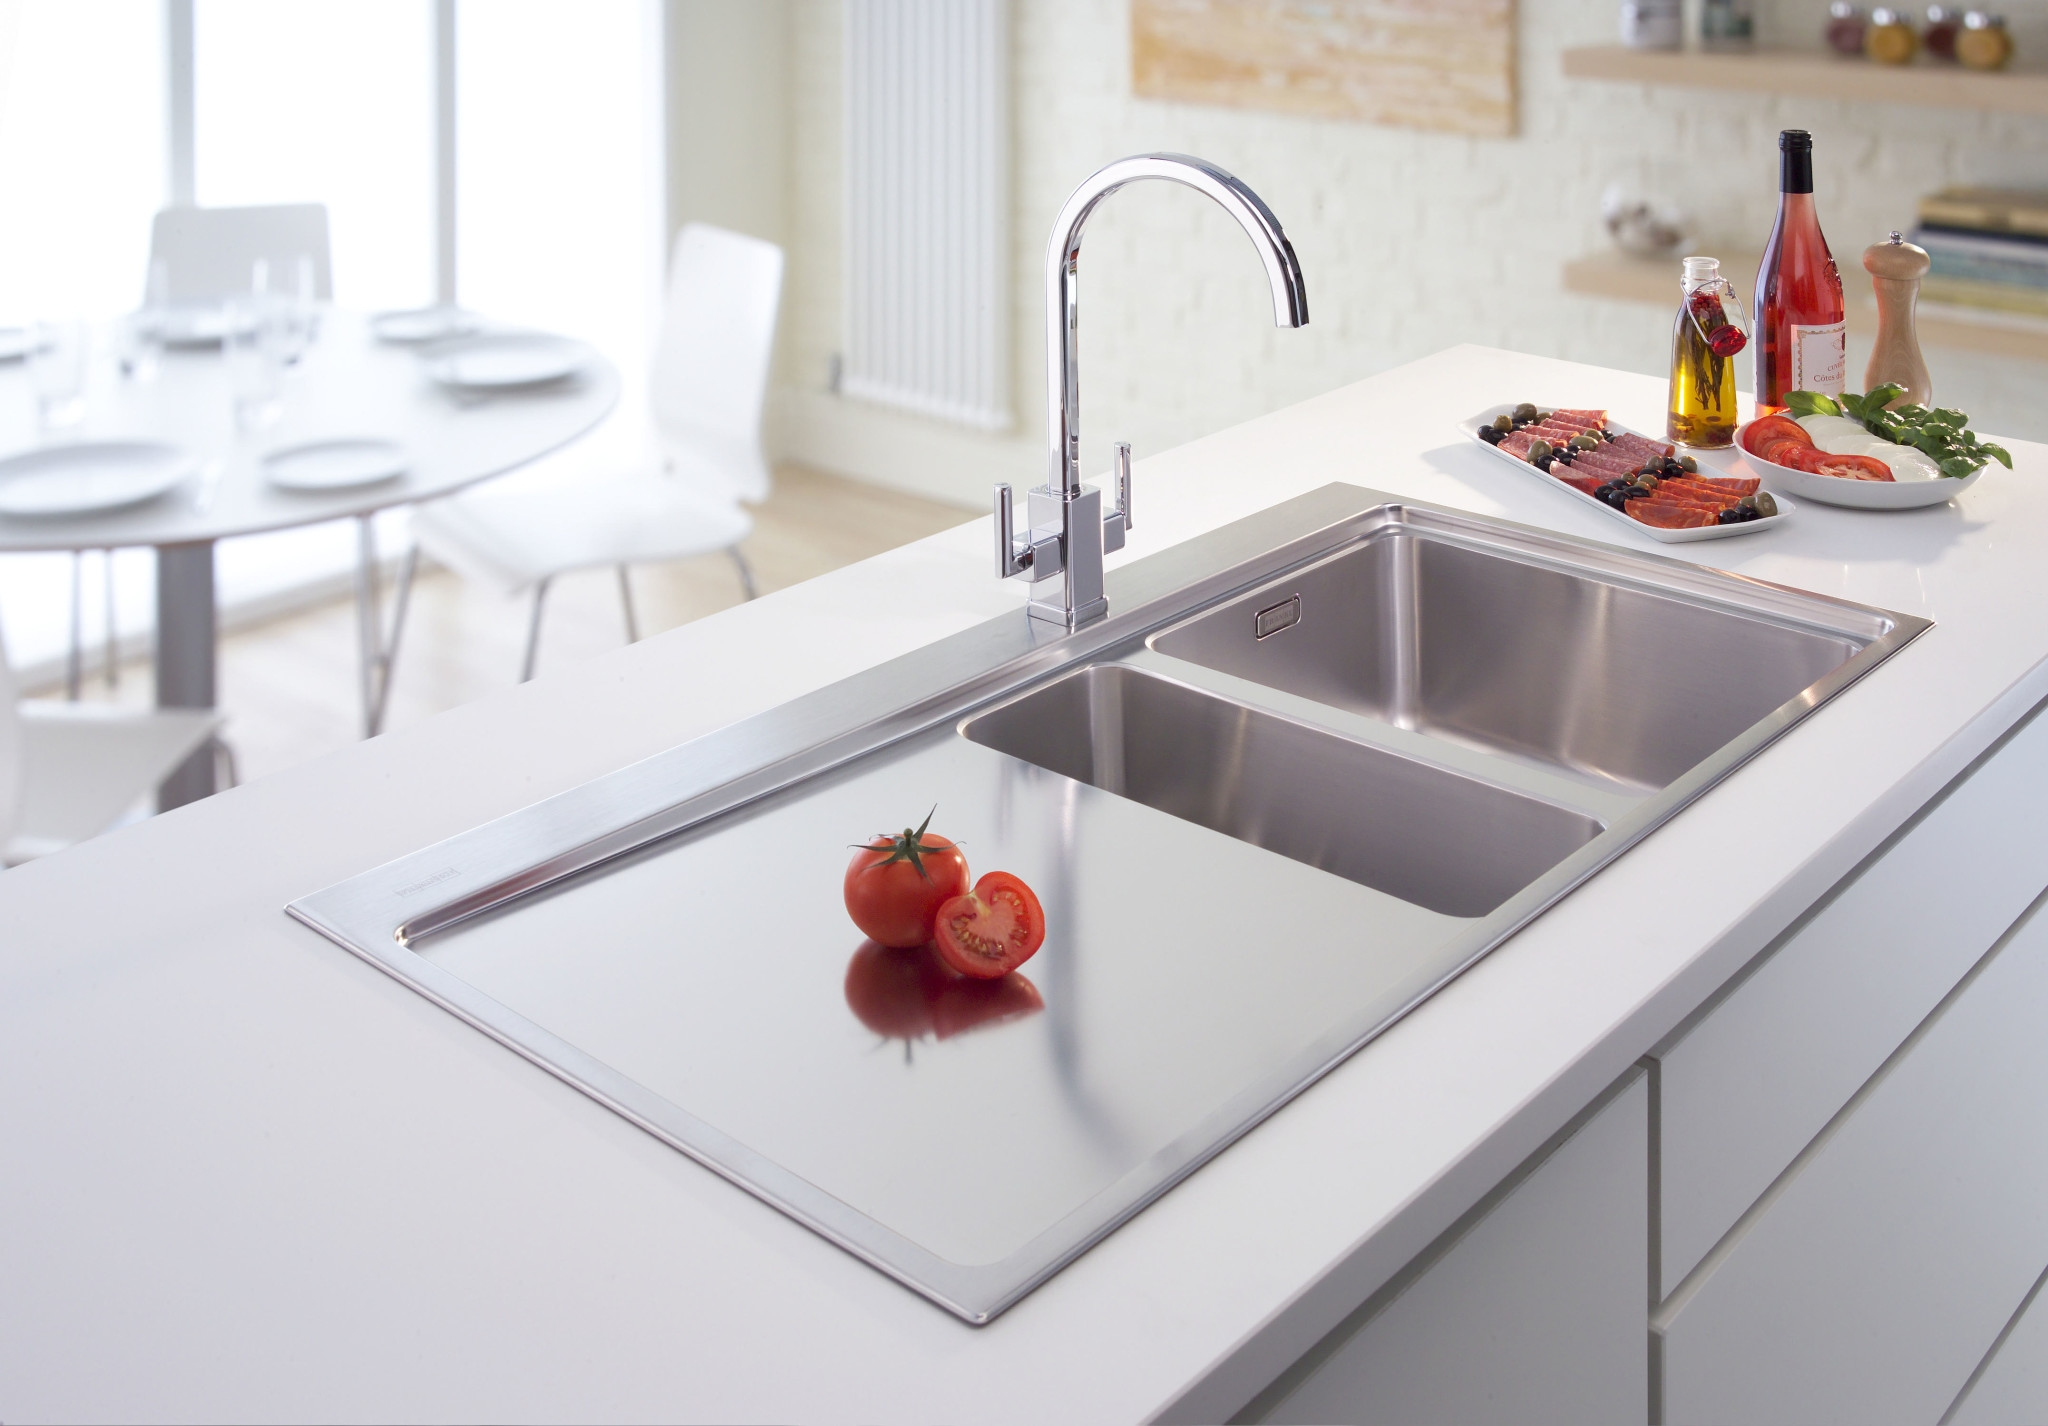 elkay 3 compartment sink faucet elkay 3 compartment sink faucet bathroom elkay 3 compartment sink with dayton sinks and beautiful 2048 x 1426